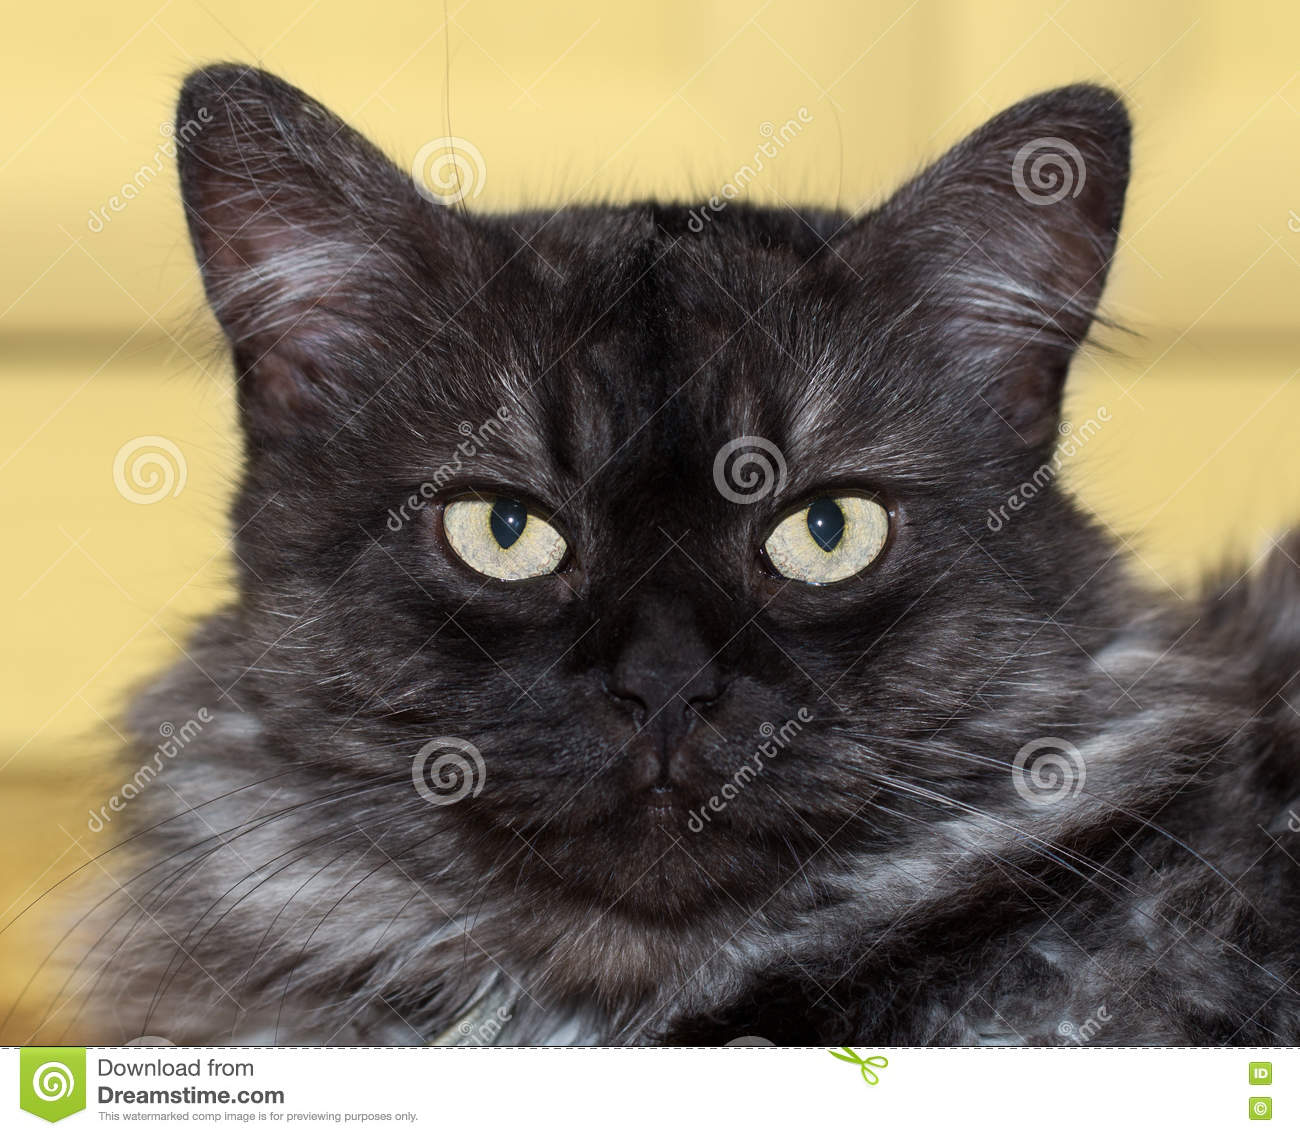 Annoyed Fluffy Cat Stock Photo Image Of Striped Head 76587762